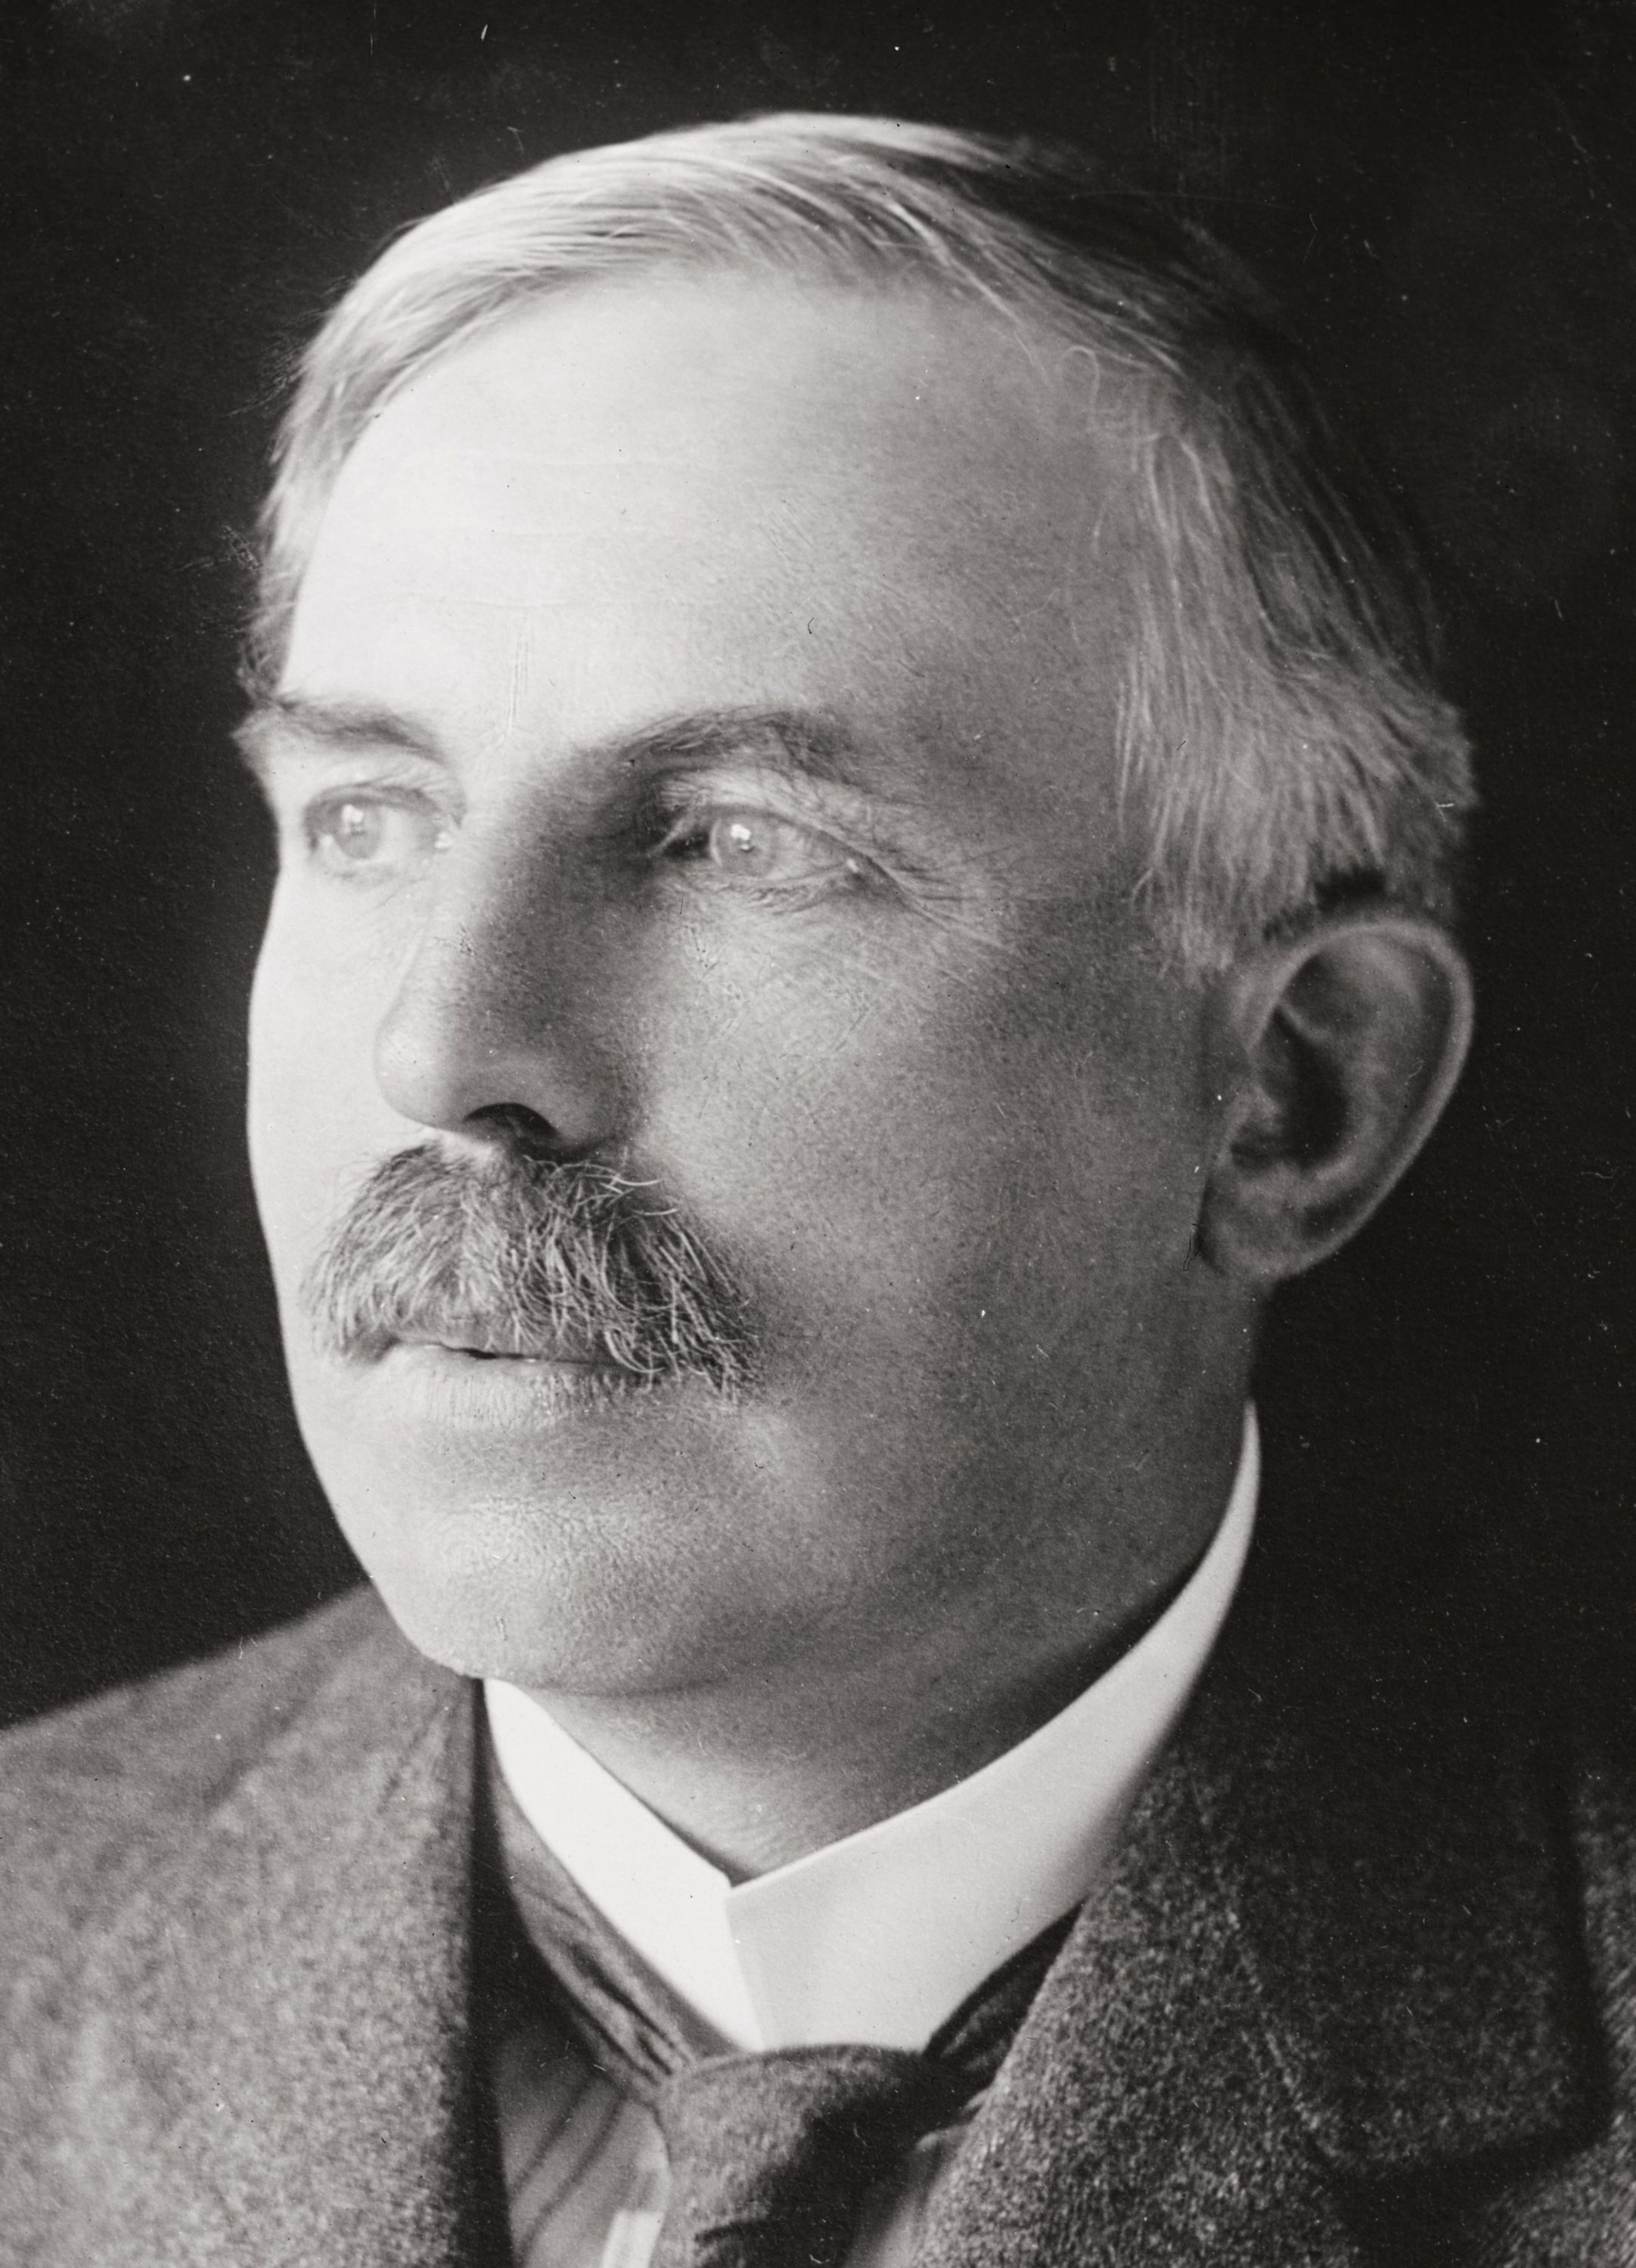 ▲ Ernest Rutherford (1871-1937)